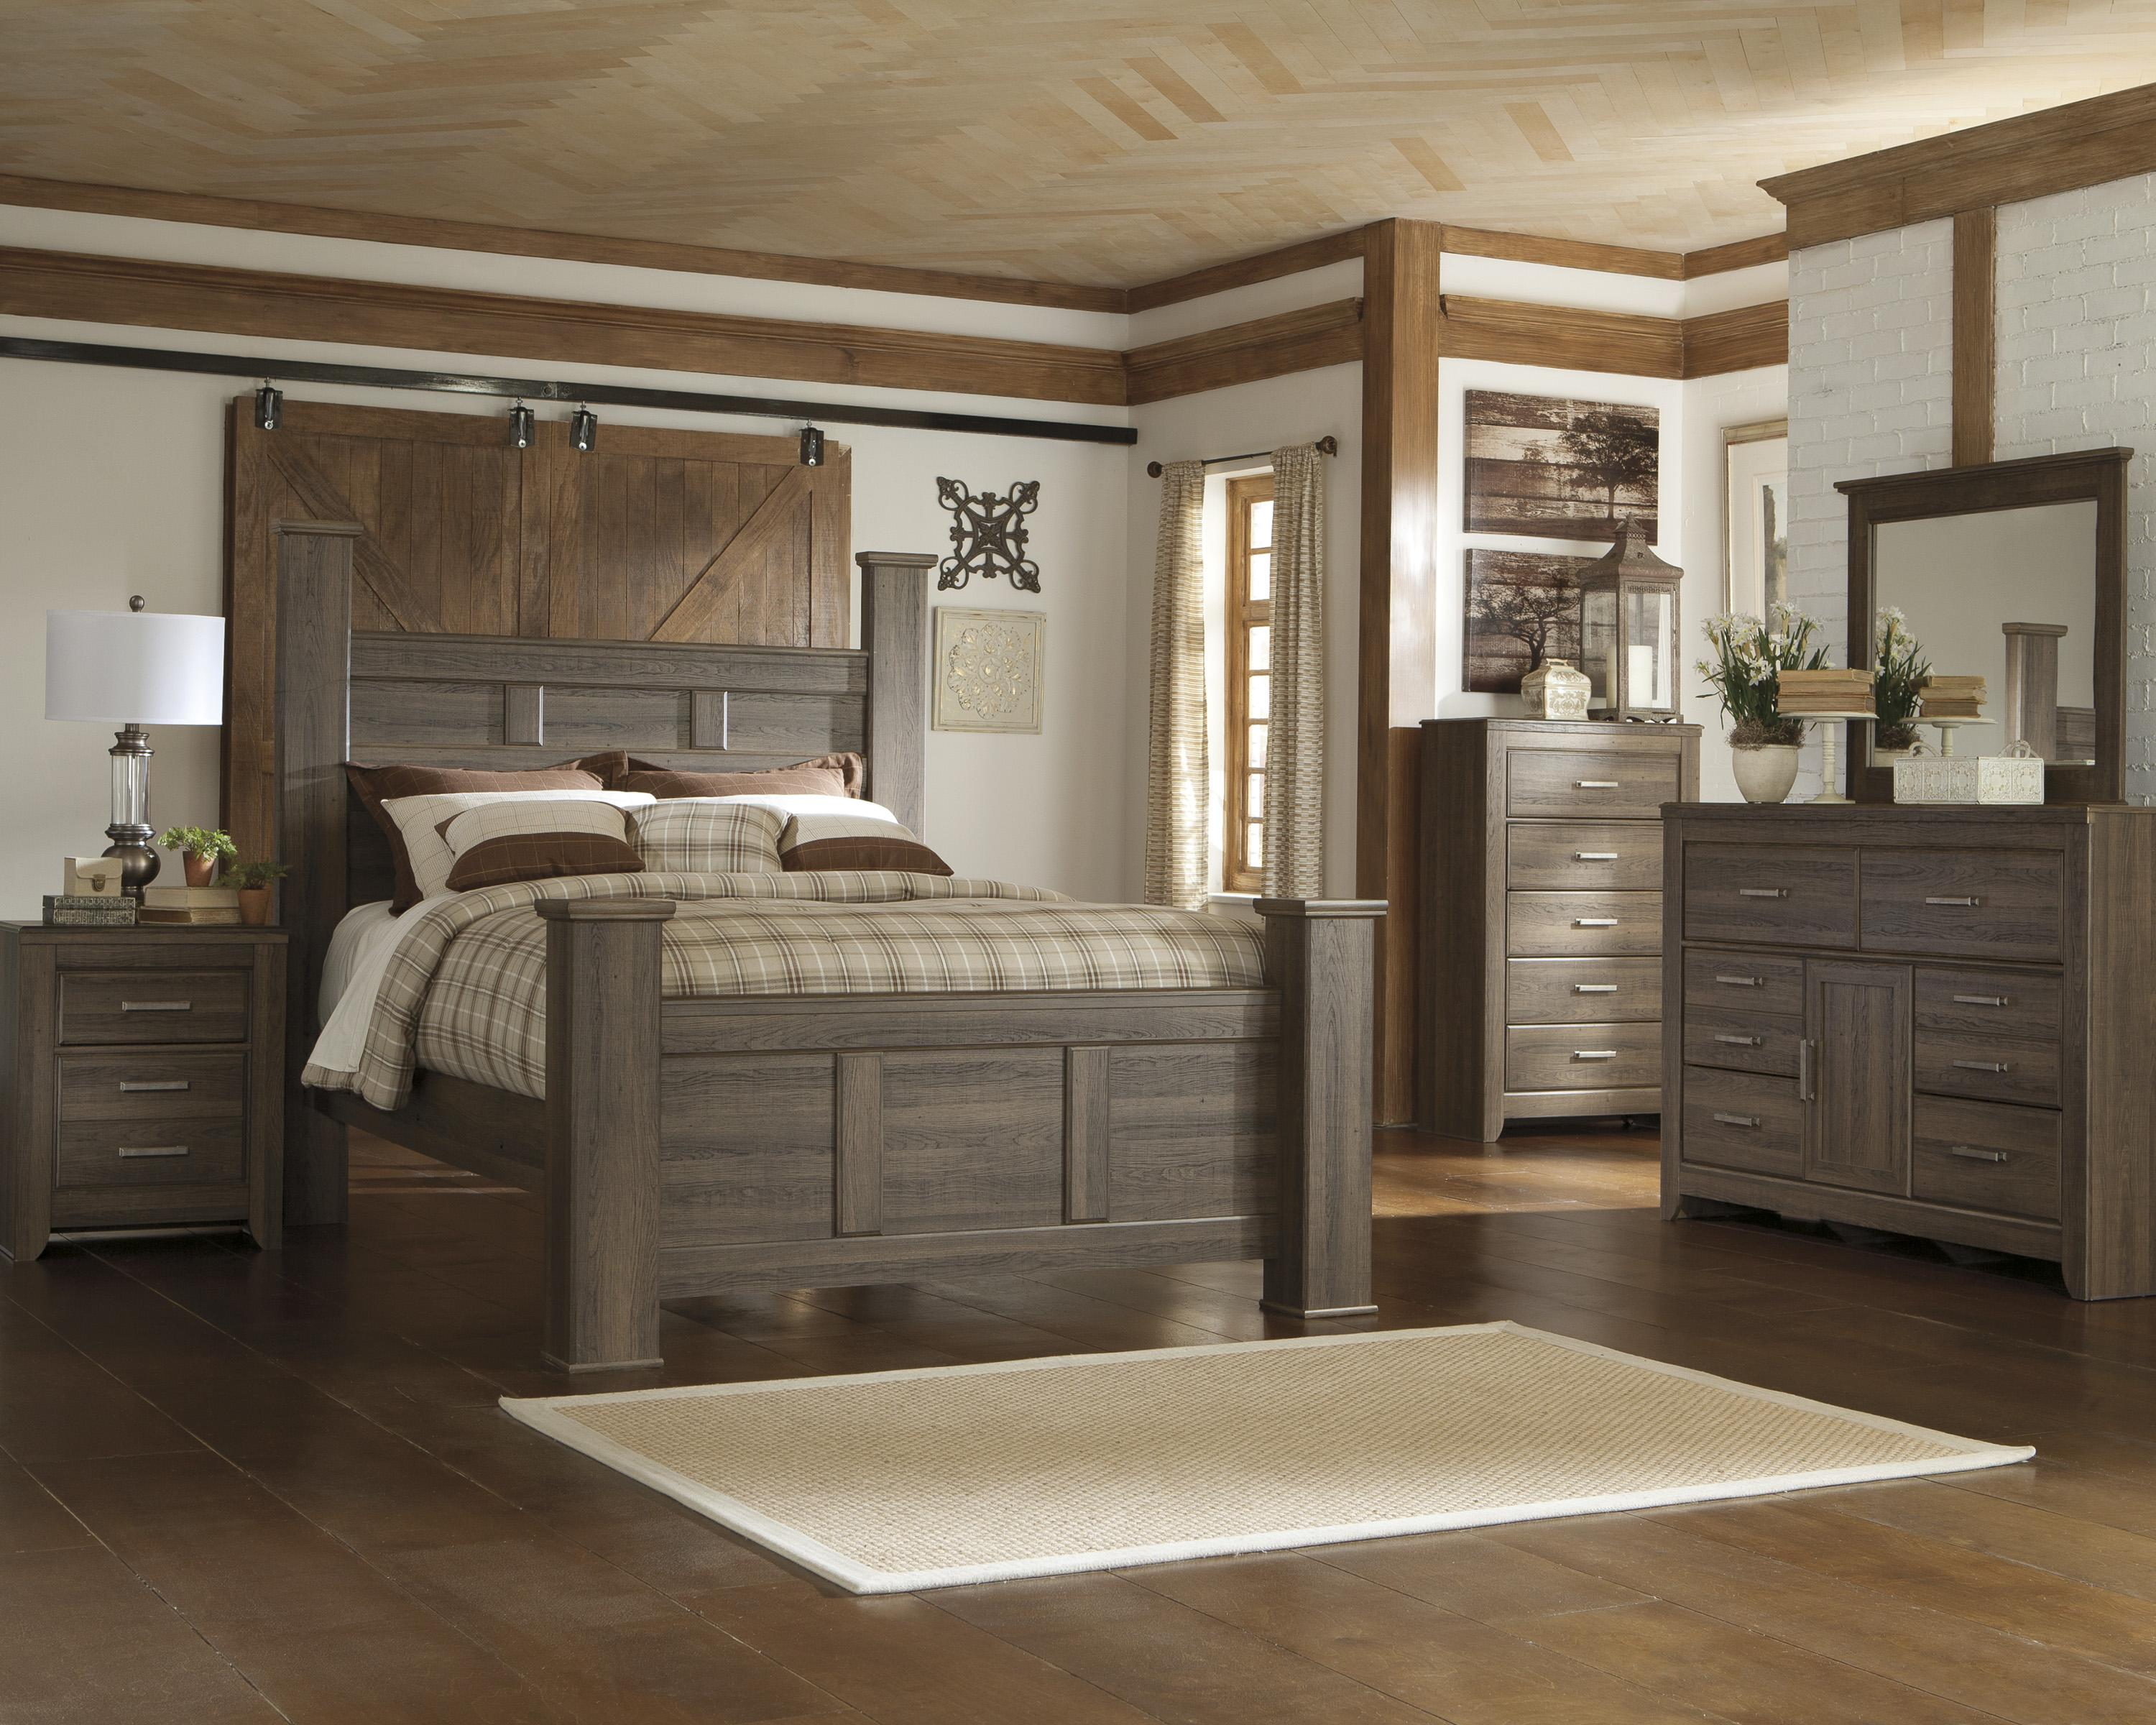 Juararo California King Bedroom Group by Signature Design by Ashley at Zak's Warehouse Clearance Center